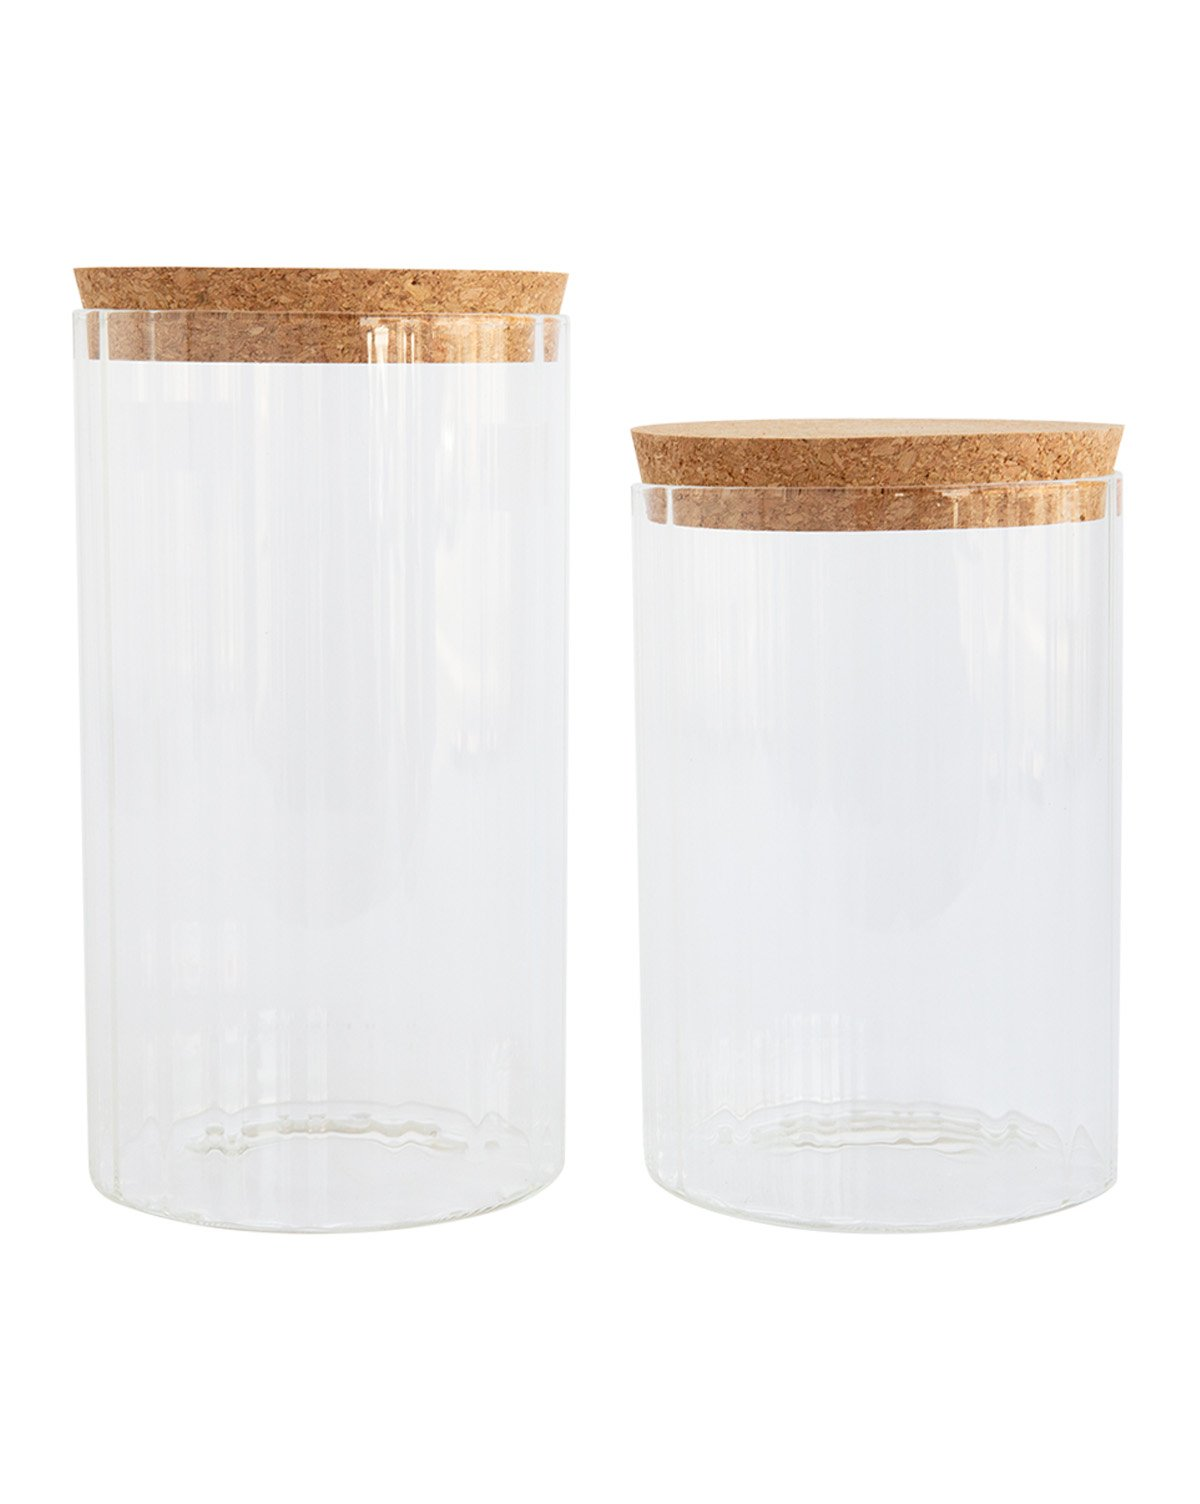 Ribber_Canisters_1.jpg